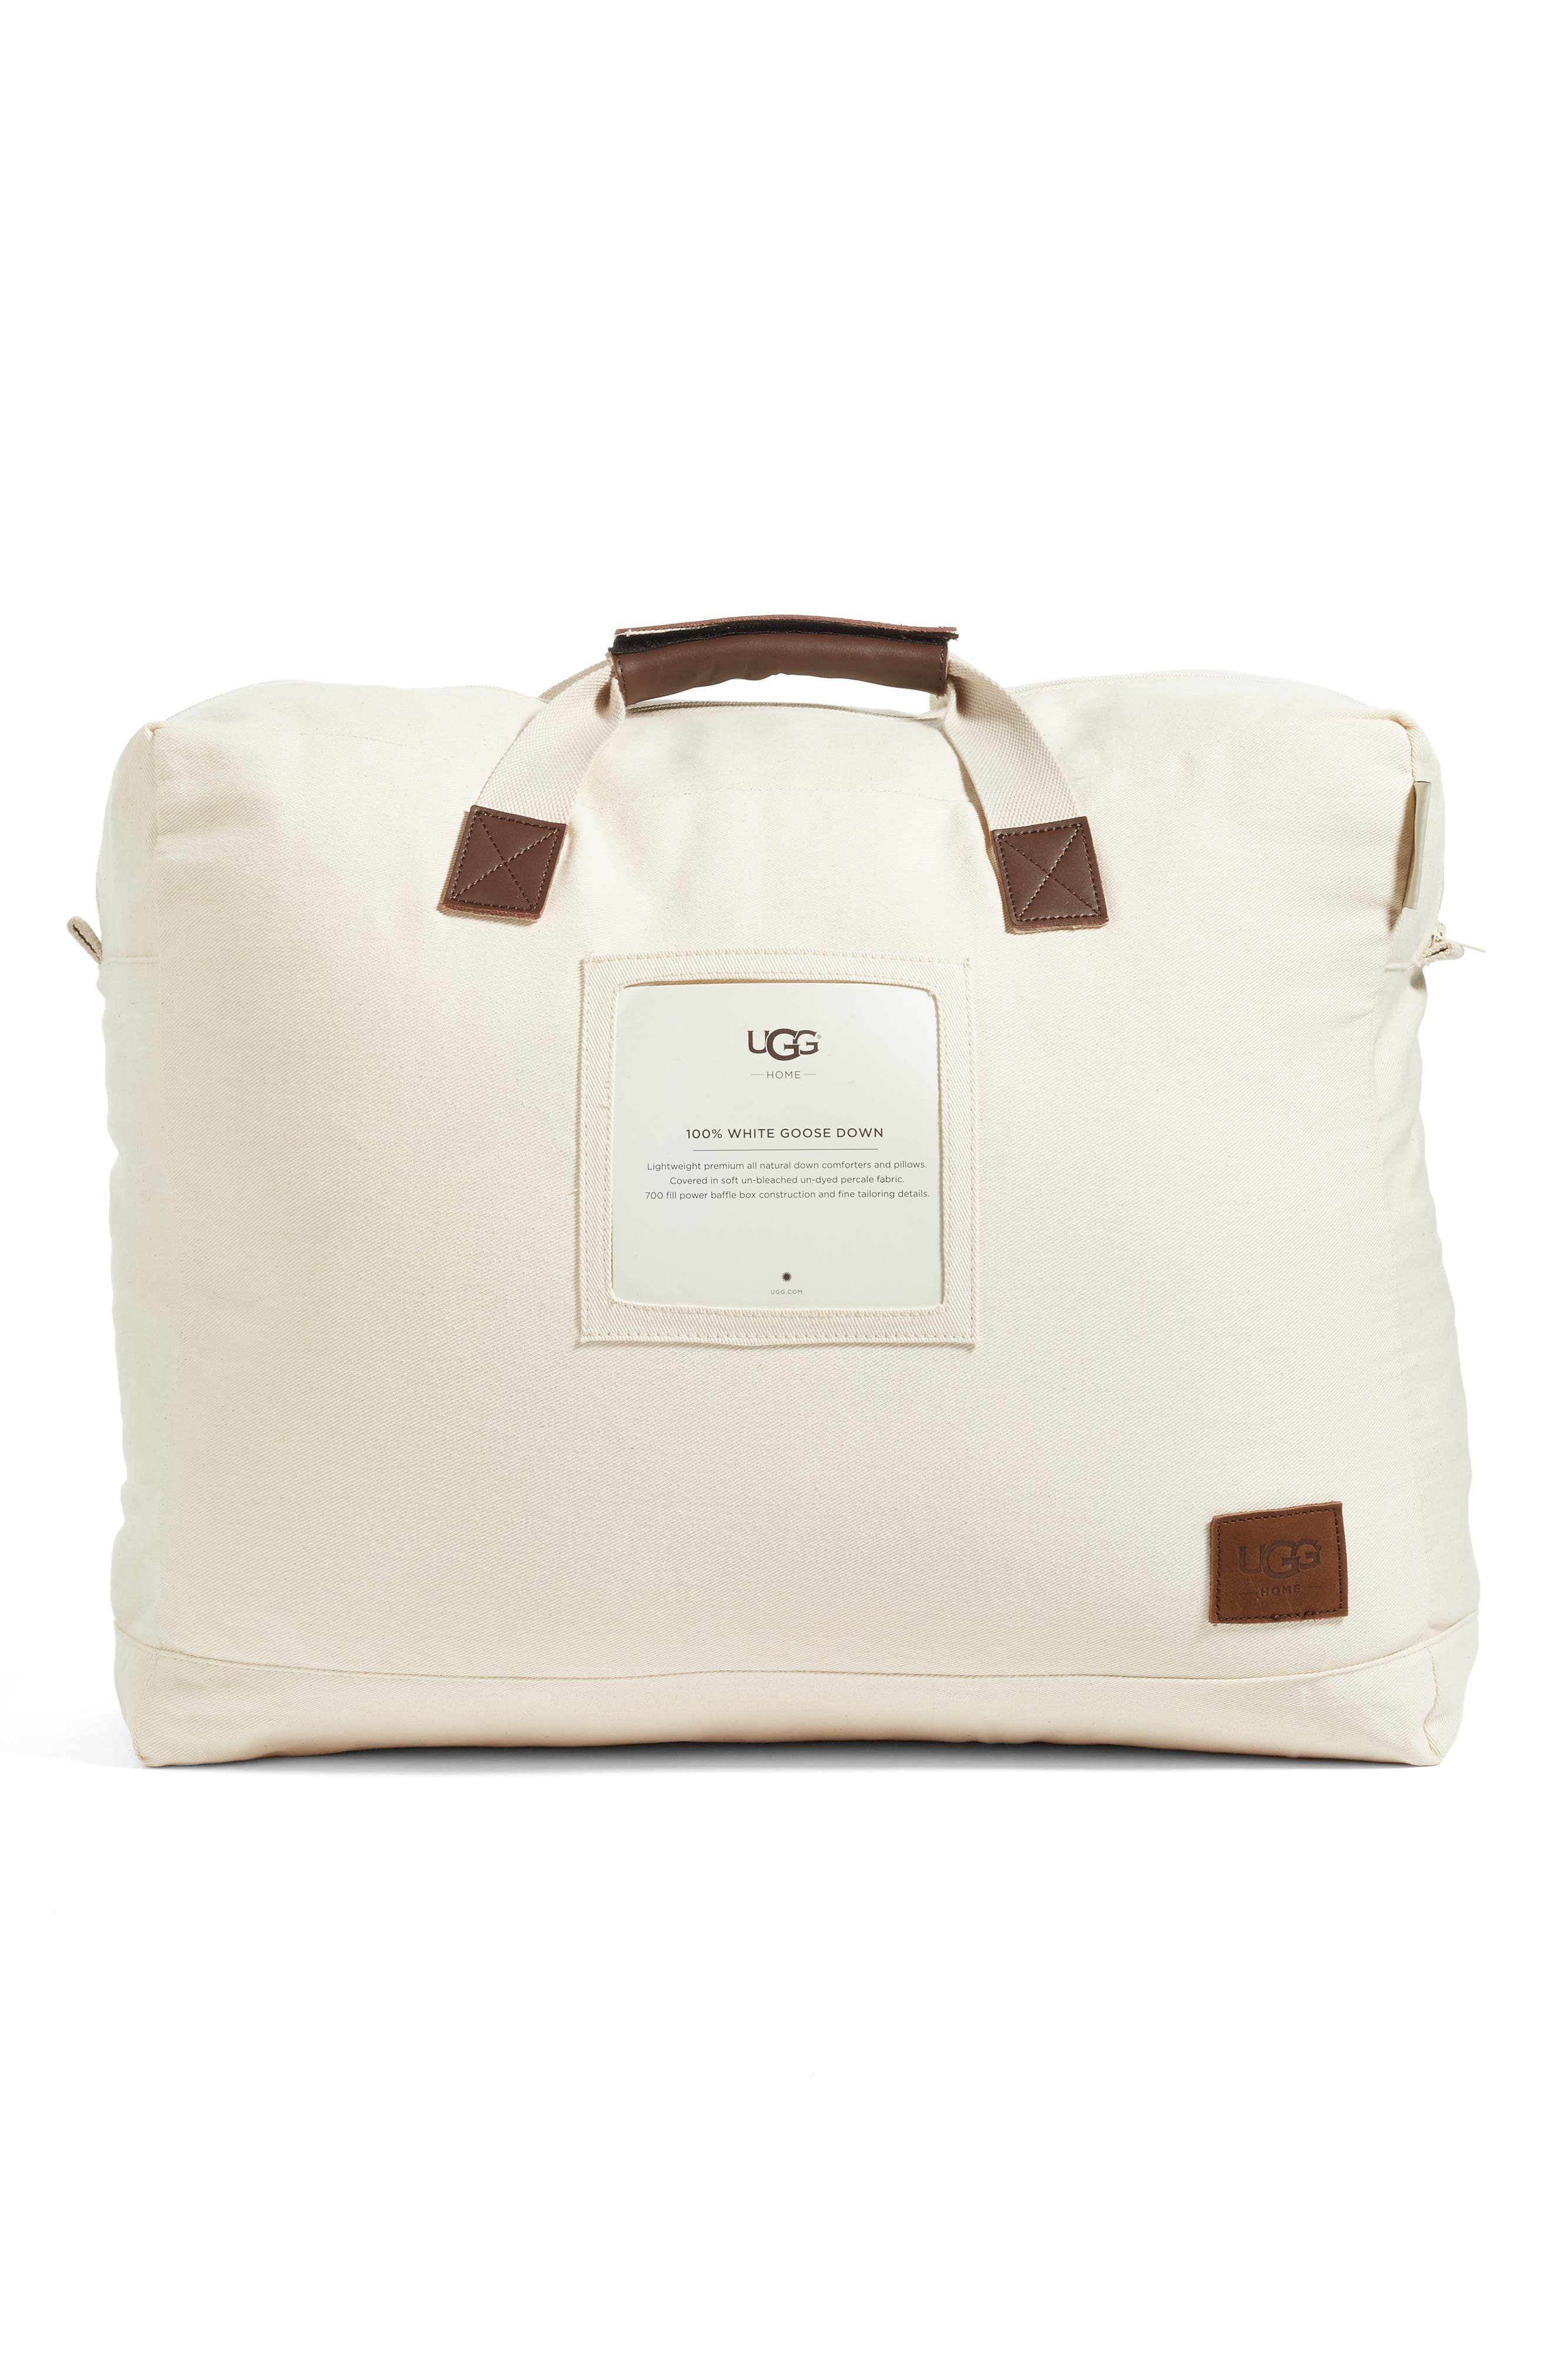 Year Round Down Comforter,                         Main,                         color, Down/ Natural